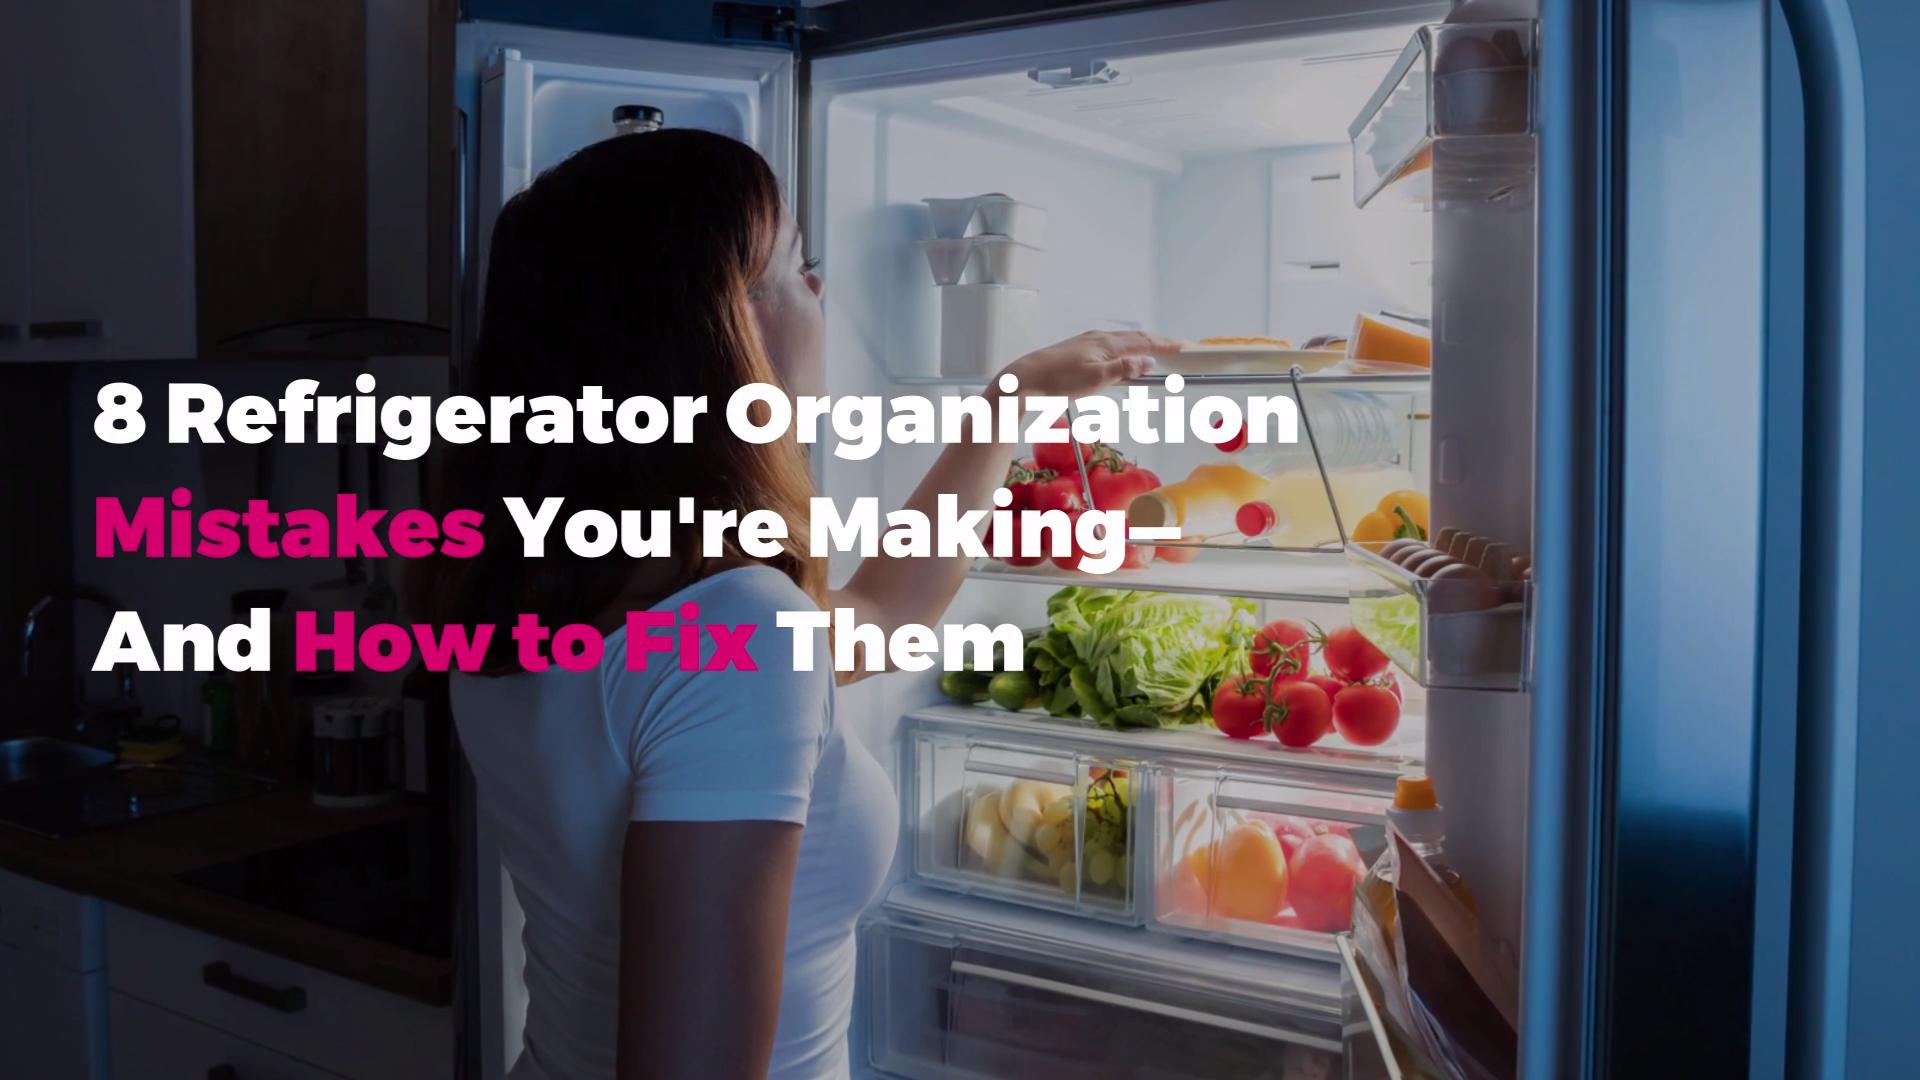 8 Refrigerator Organization Mistakes You're Making—And How to Fix Them